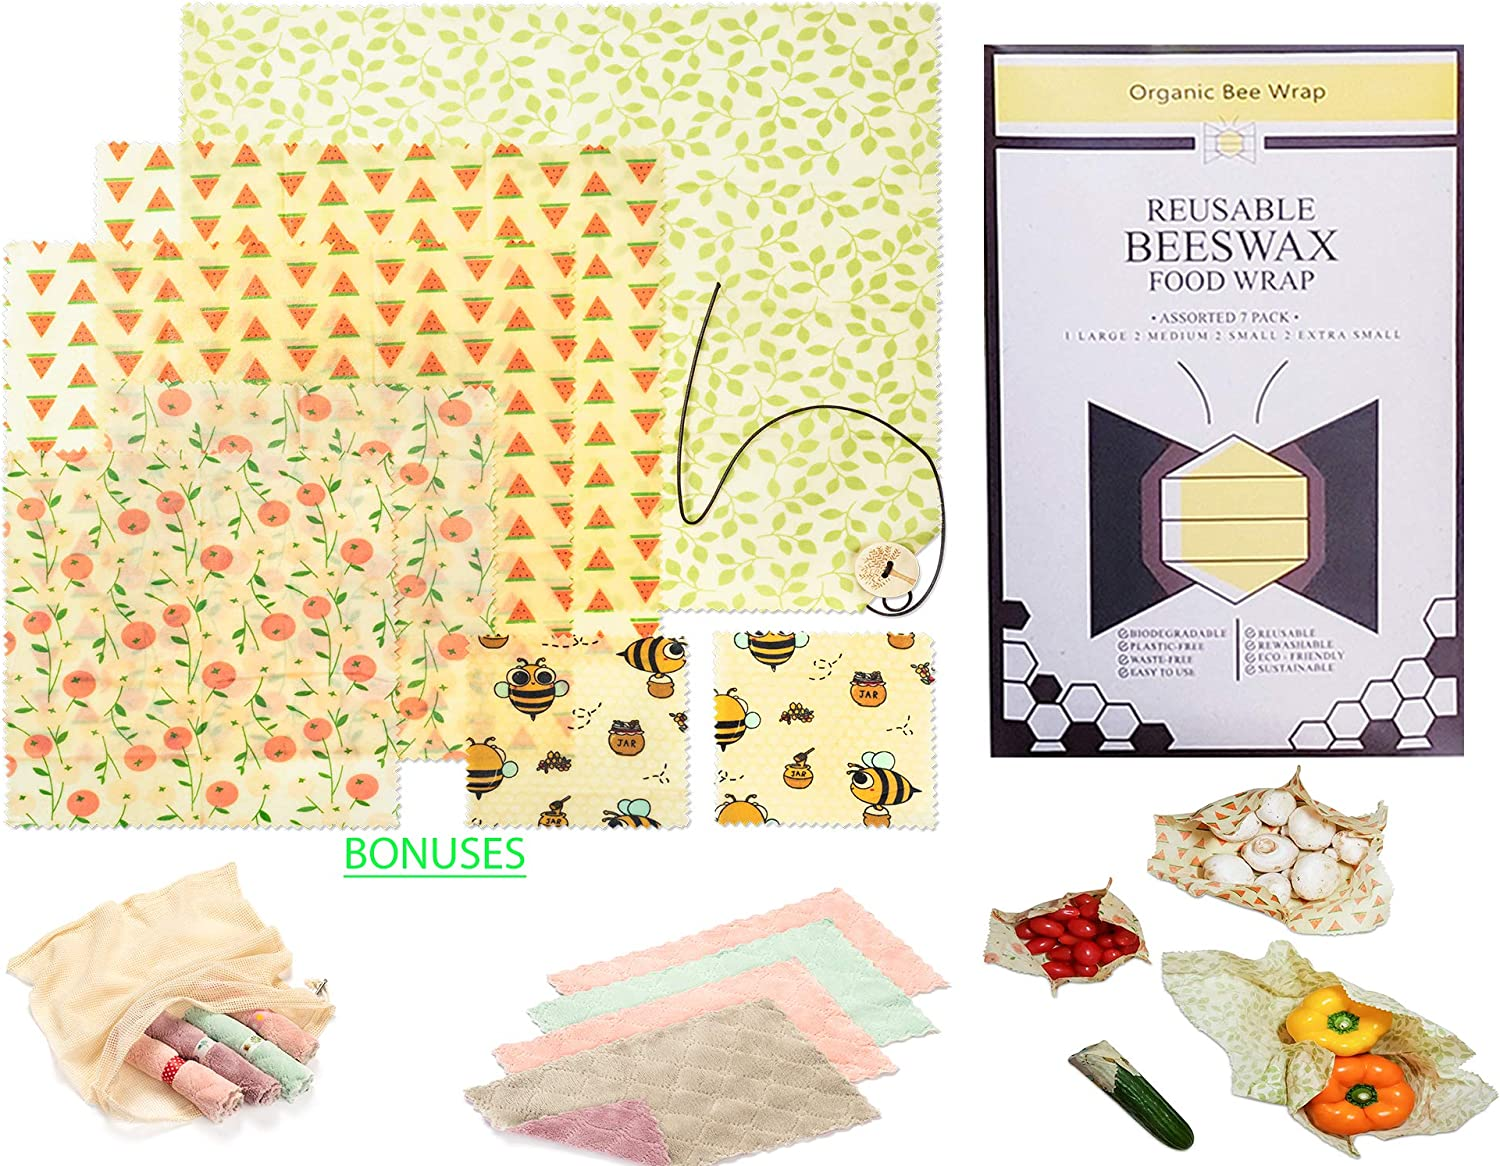 (13 pc. Bundle) Beeswax Food Wraps, Kitchen Cloths, Disposable Paper Straws and Cotton Mesh Produce Bags, Sustainable and Reusable Storage for Snacks, Sandwiches, Meals - Say Goodbye to plastic!